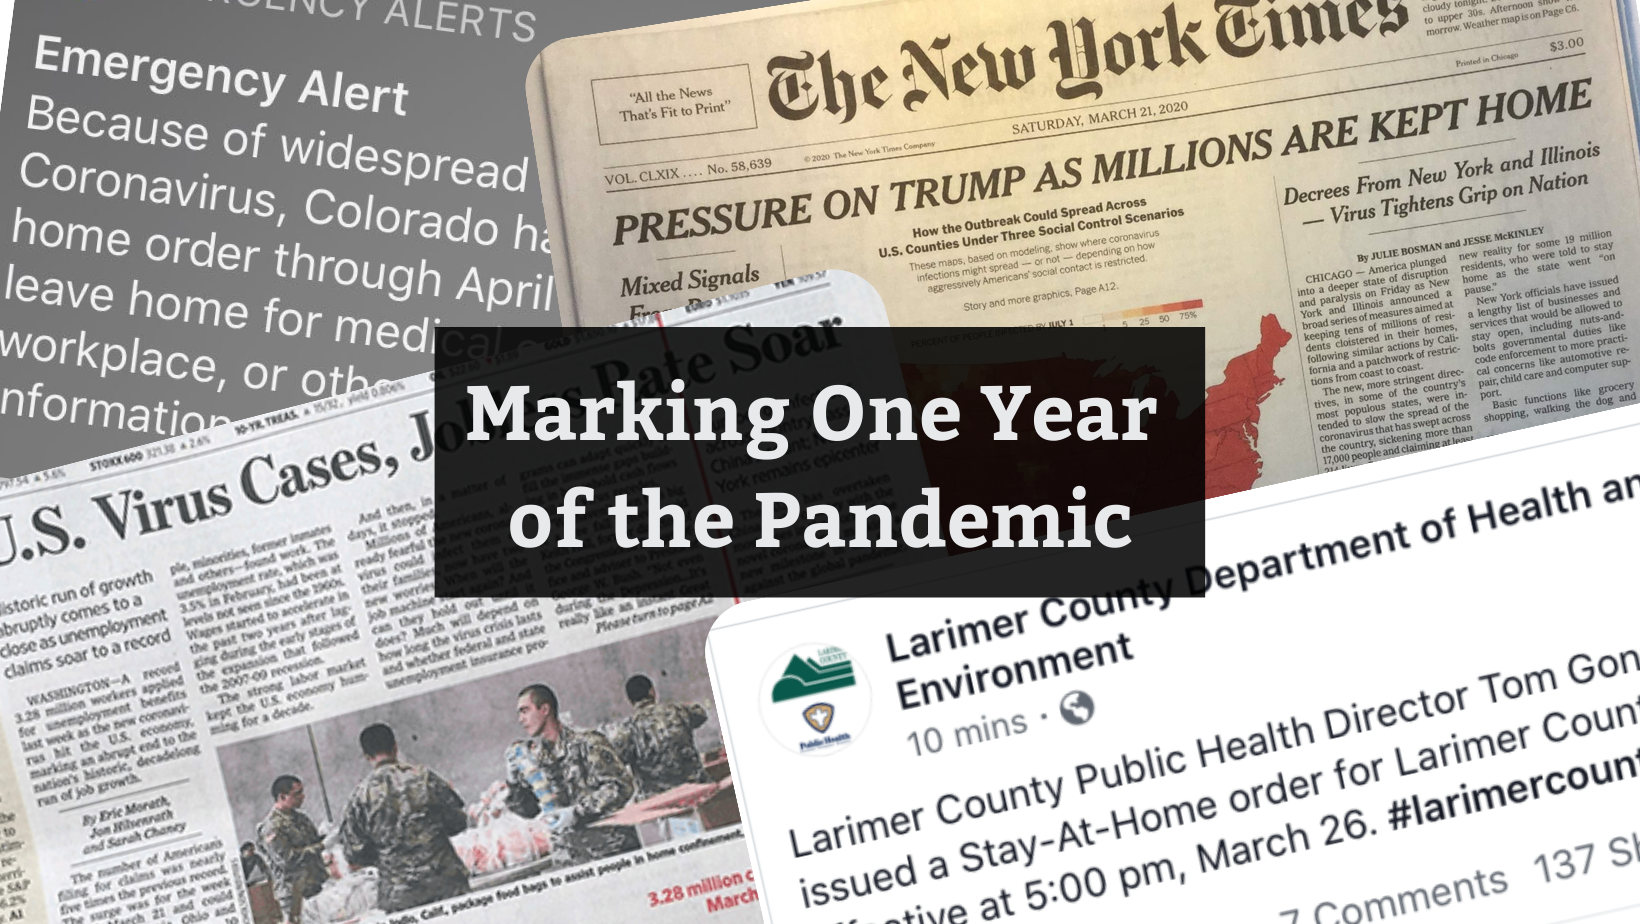 Marking One Year of the Pandemic